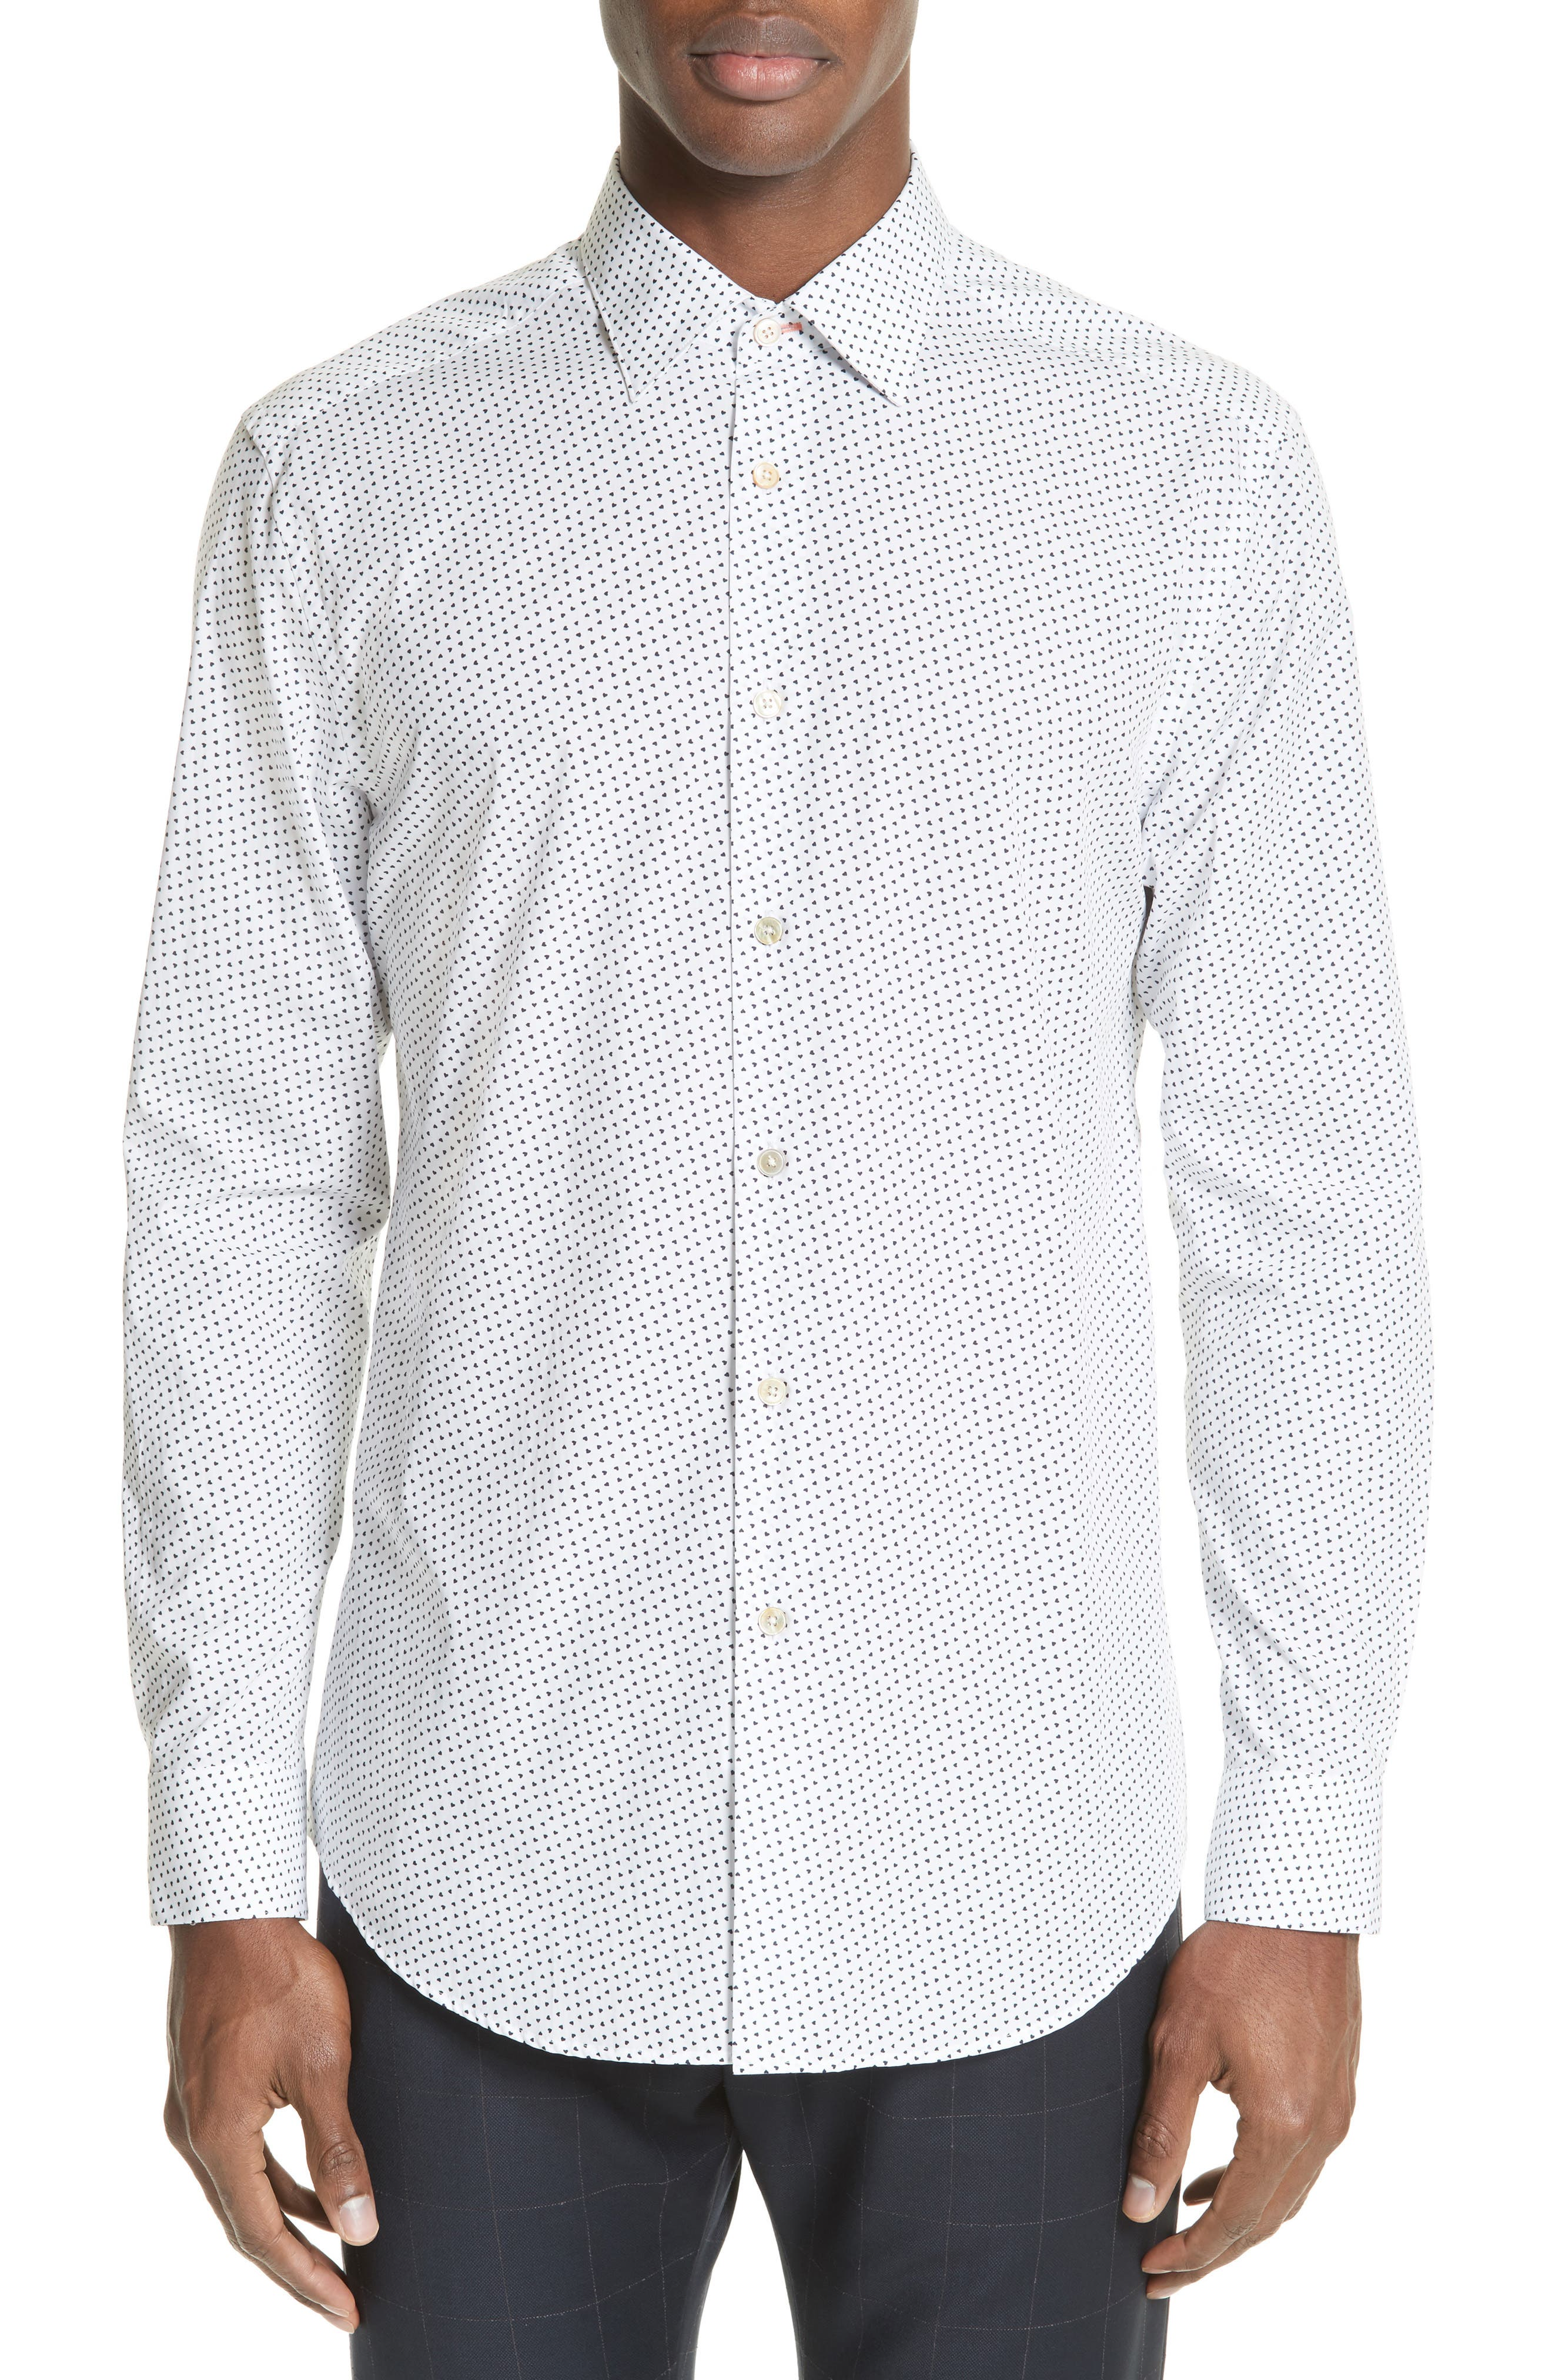 Paul Smith Heart Print Sport Shirt